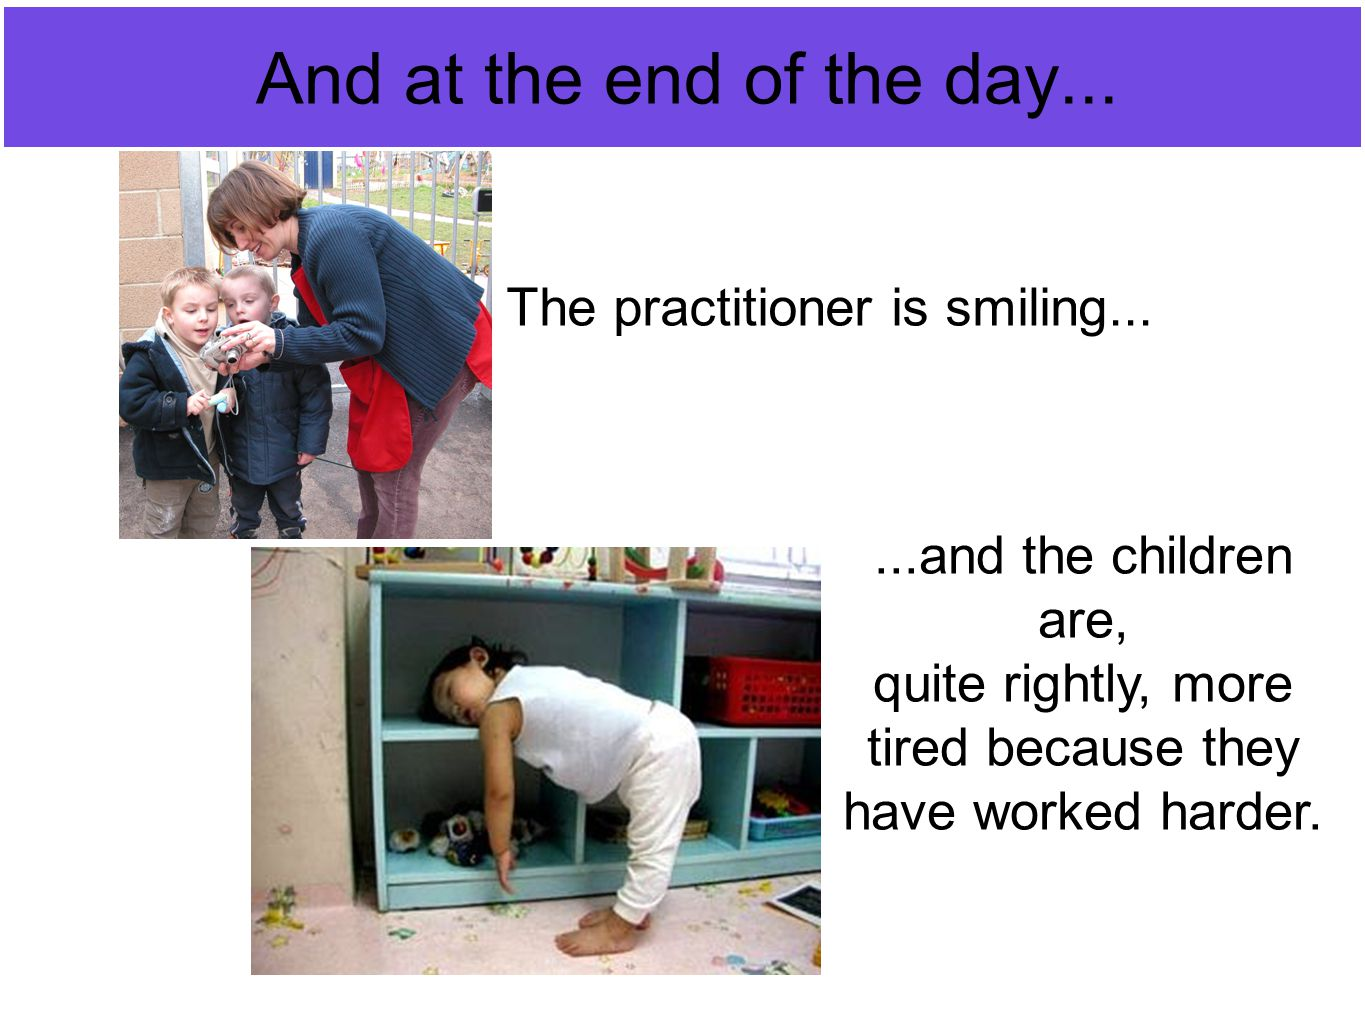 And at the end of the day... The practitioner is smiling...